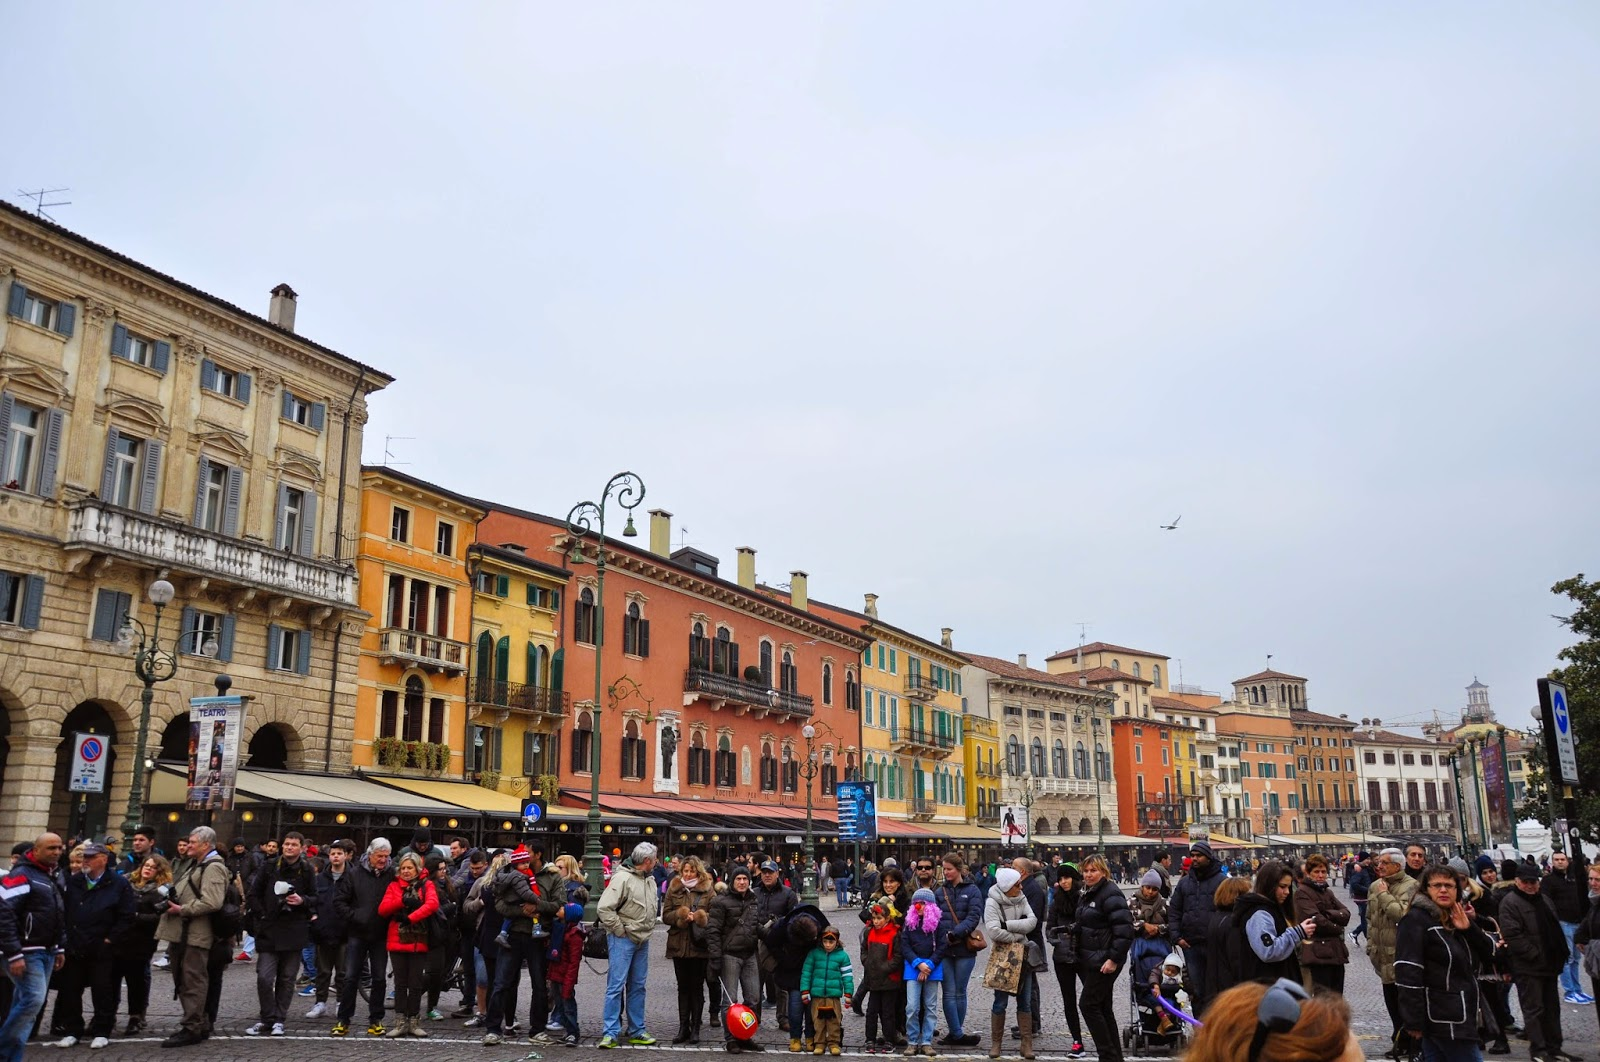 A crowd starts to form at the top of Piazza Bra, waiting for the parade to start